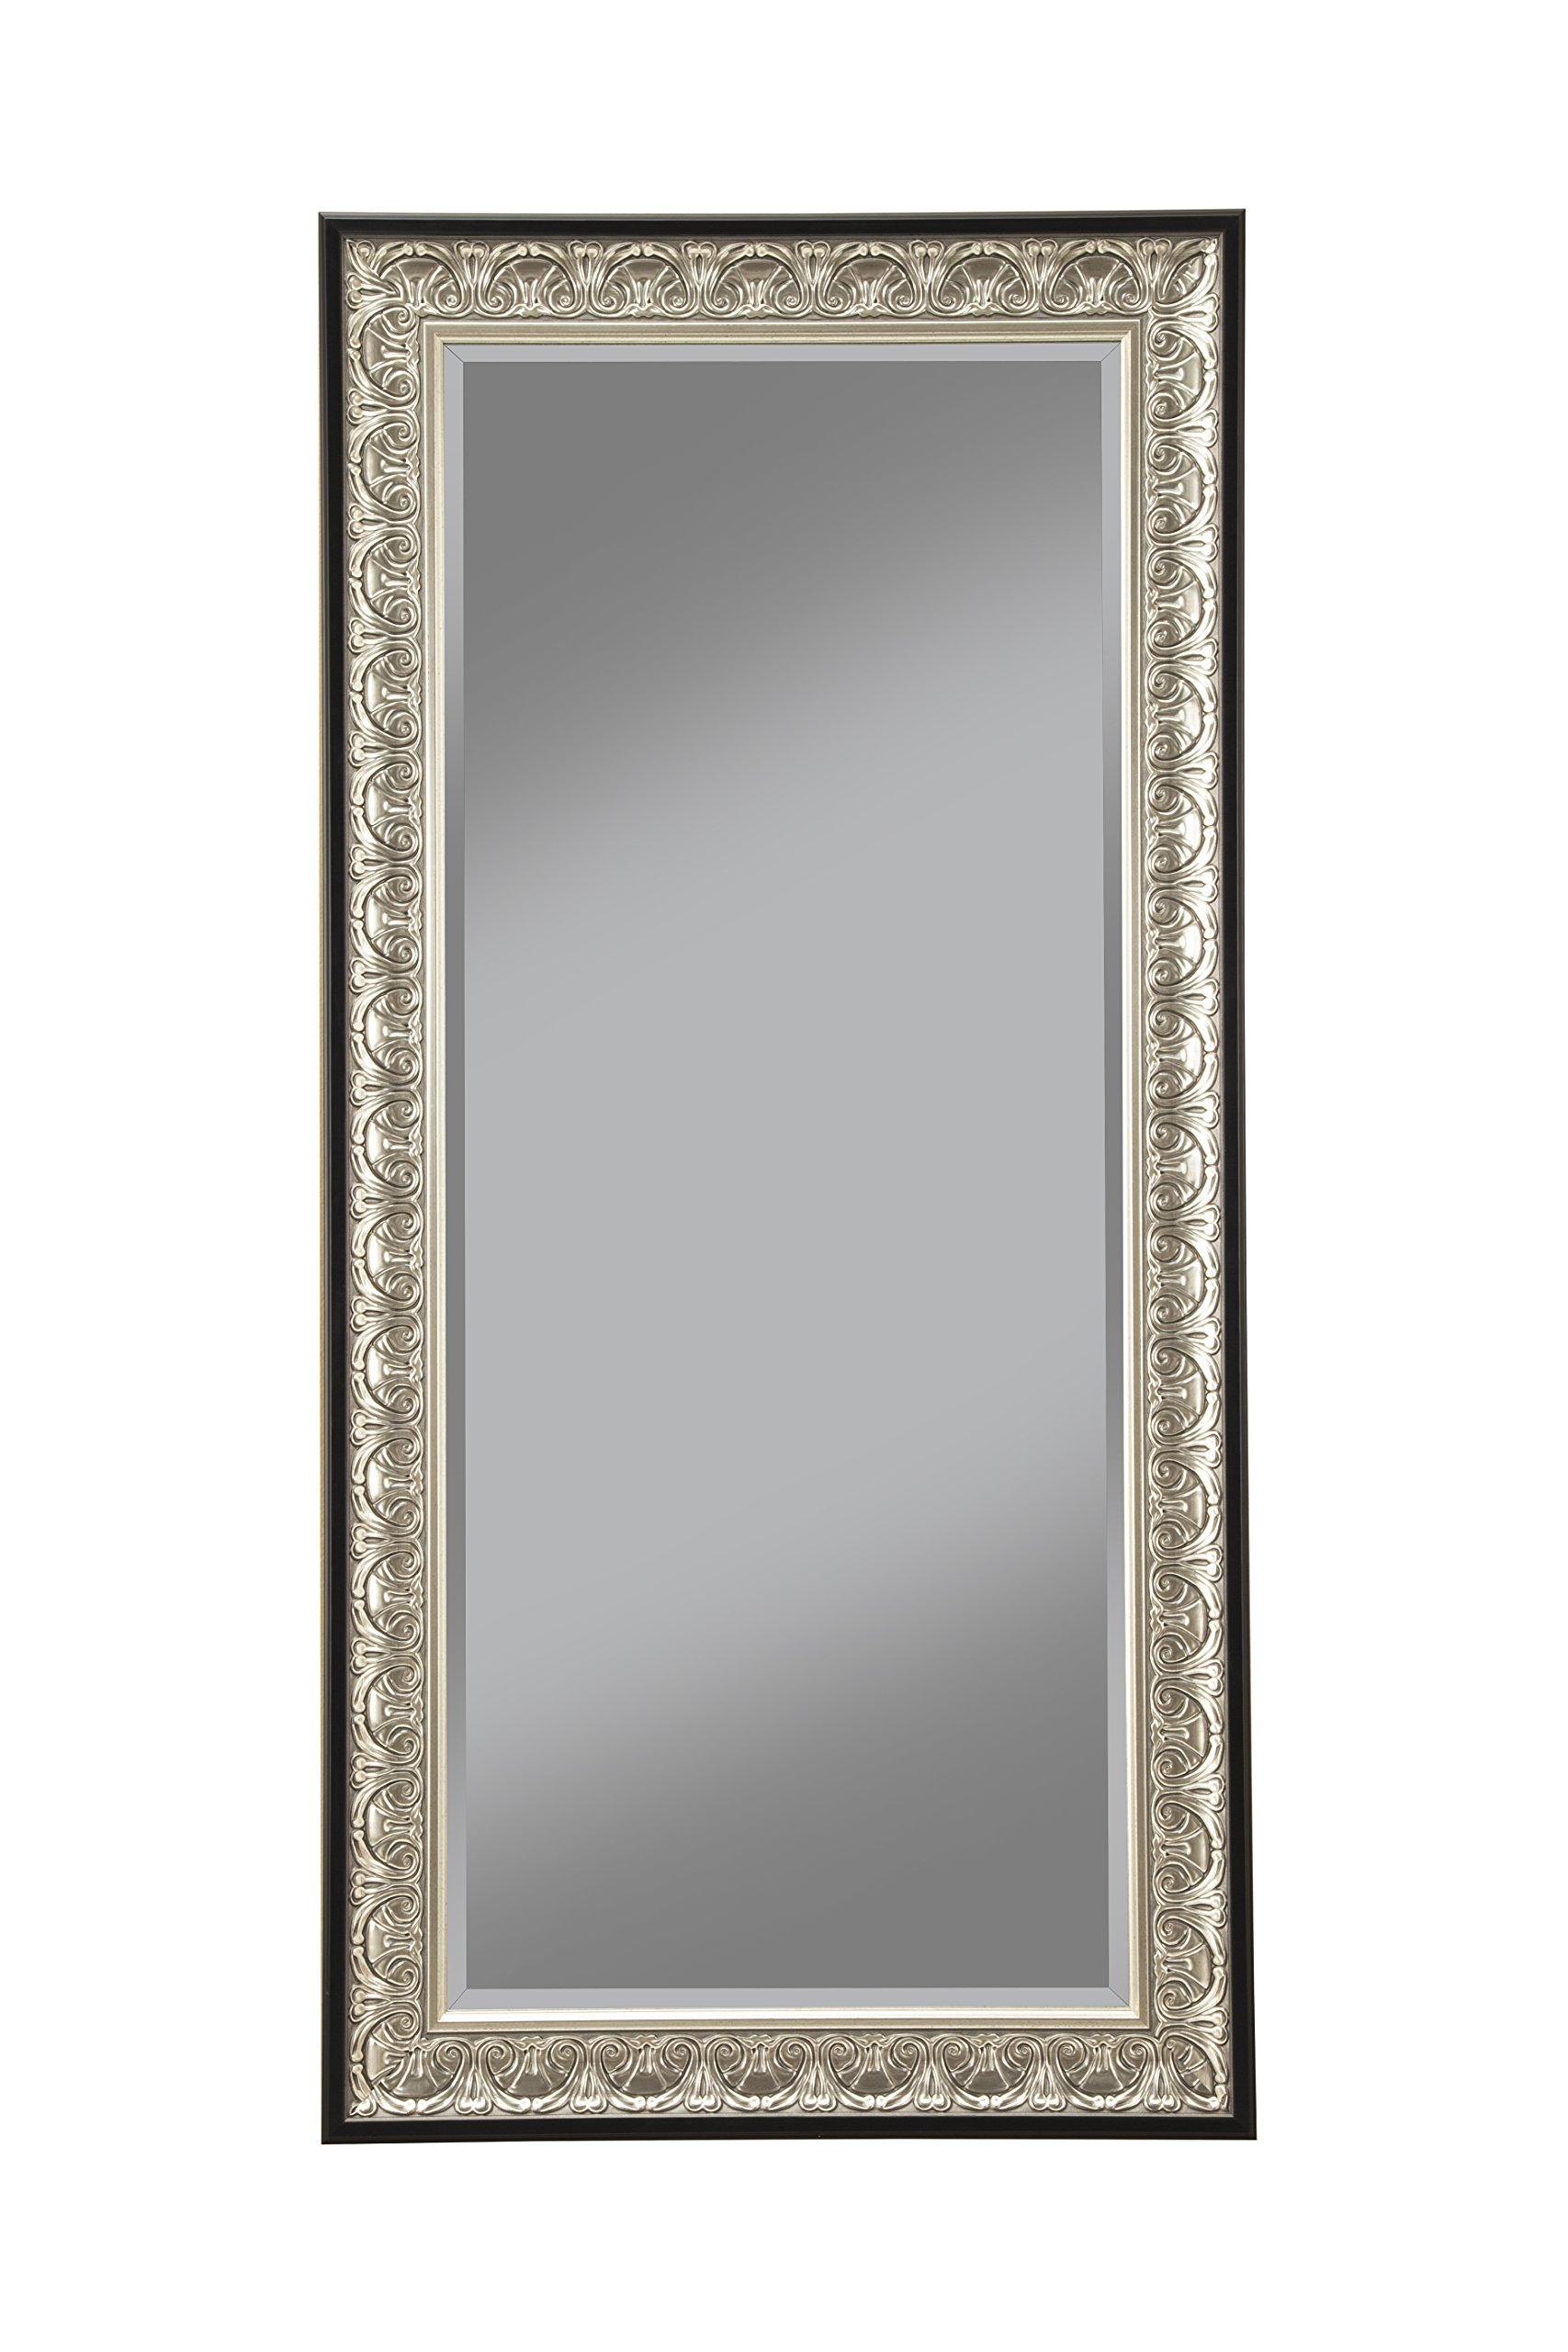 Sandberg Furniture 16011 Full Length Leaner Mirror Frame